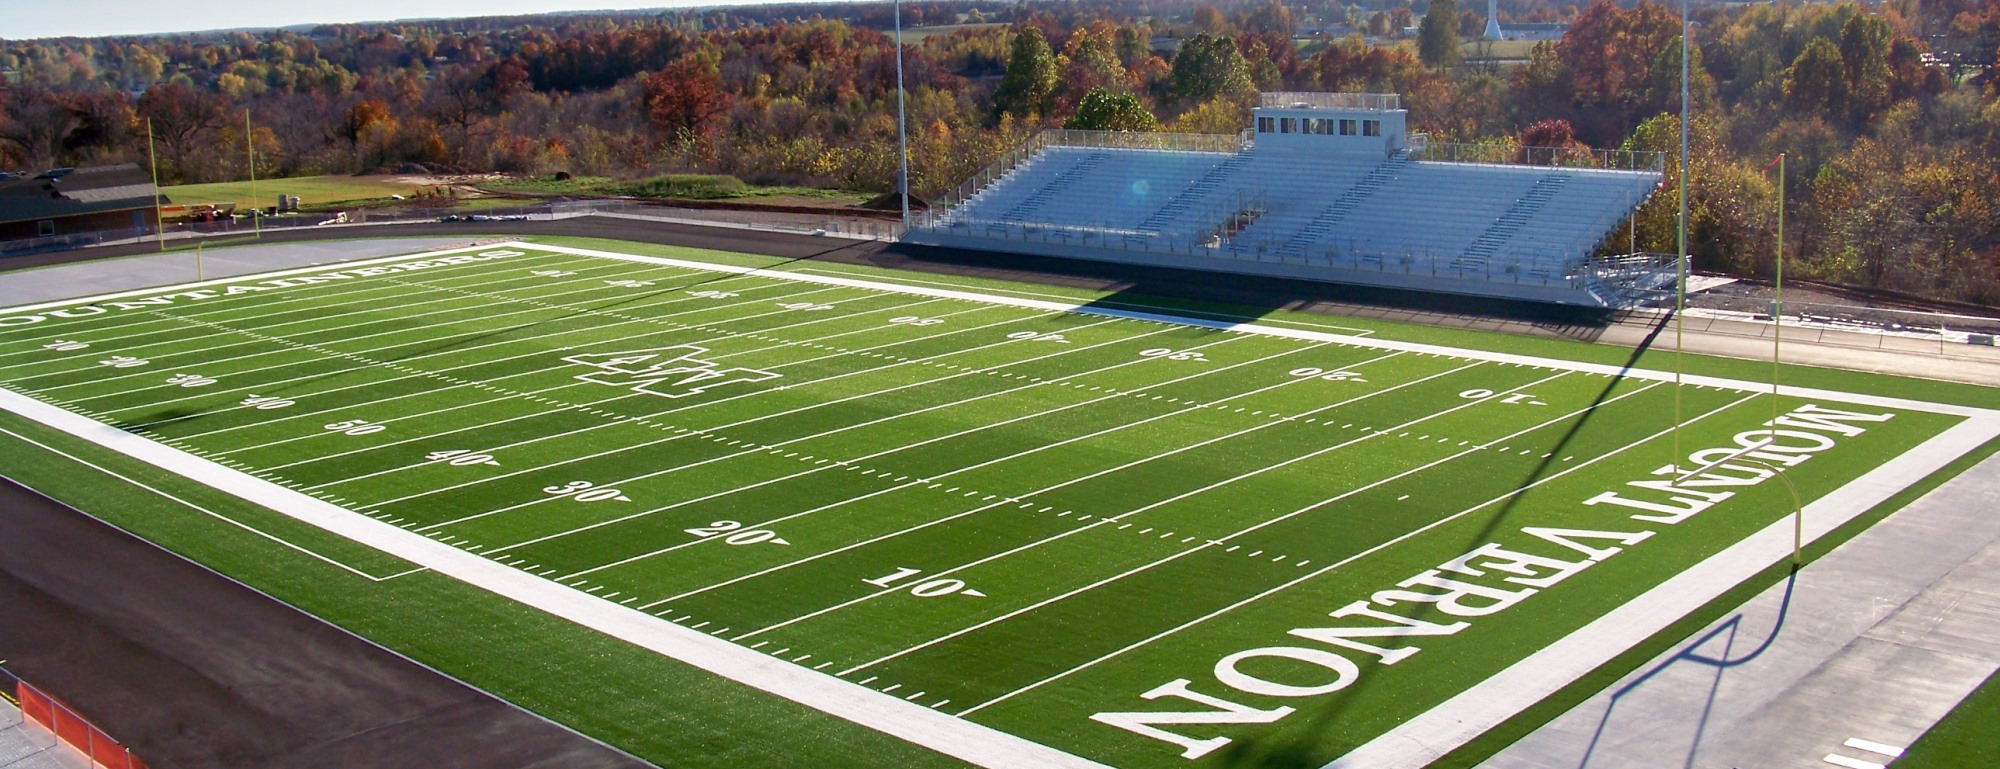 Sporturf-Midwest-Synthetic-Turf